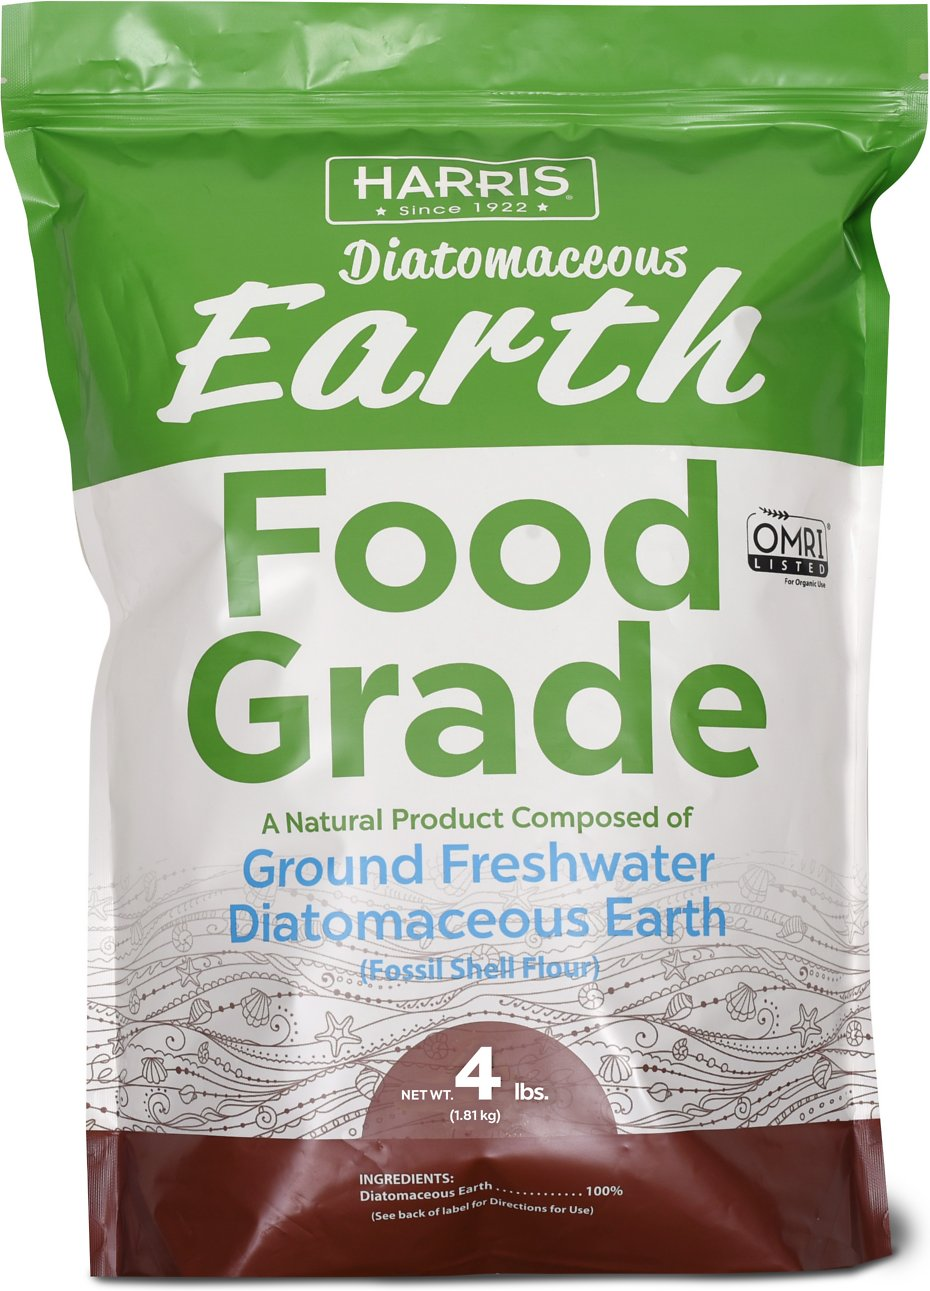 Harris Diatomaceous Earth Food Grade Ground Freshwater Powder Animal Supplement 4 Lb Bag Chewy Com